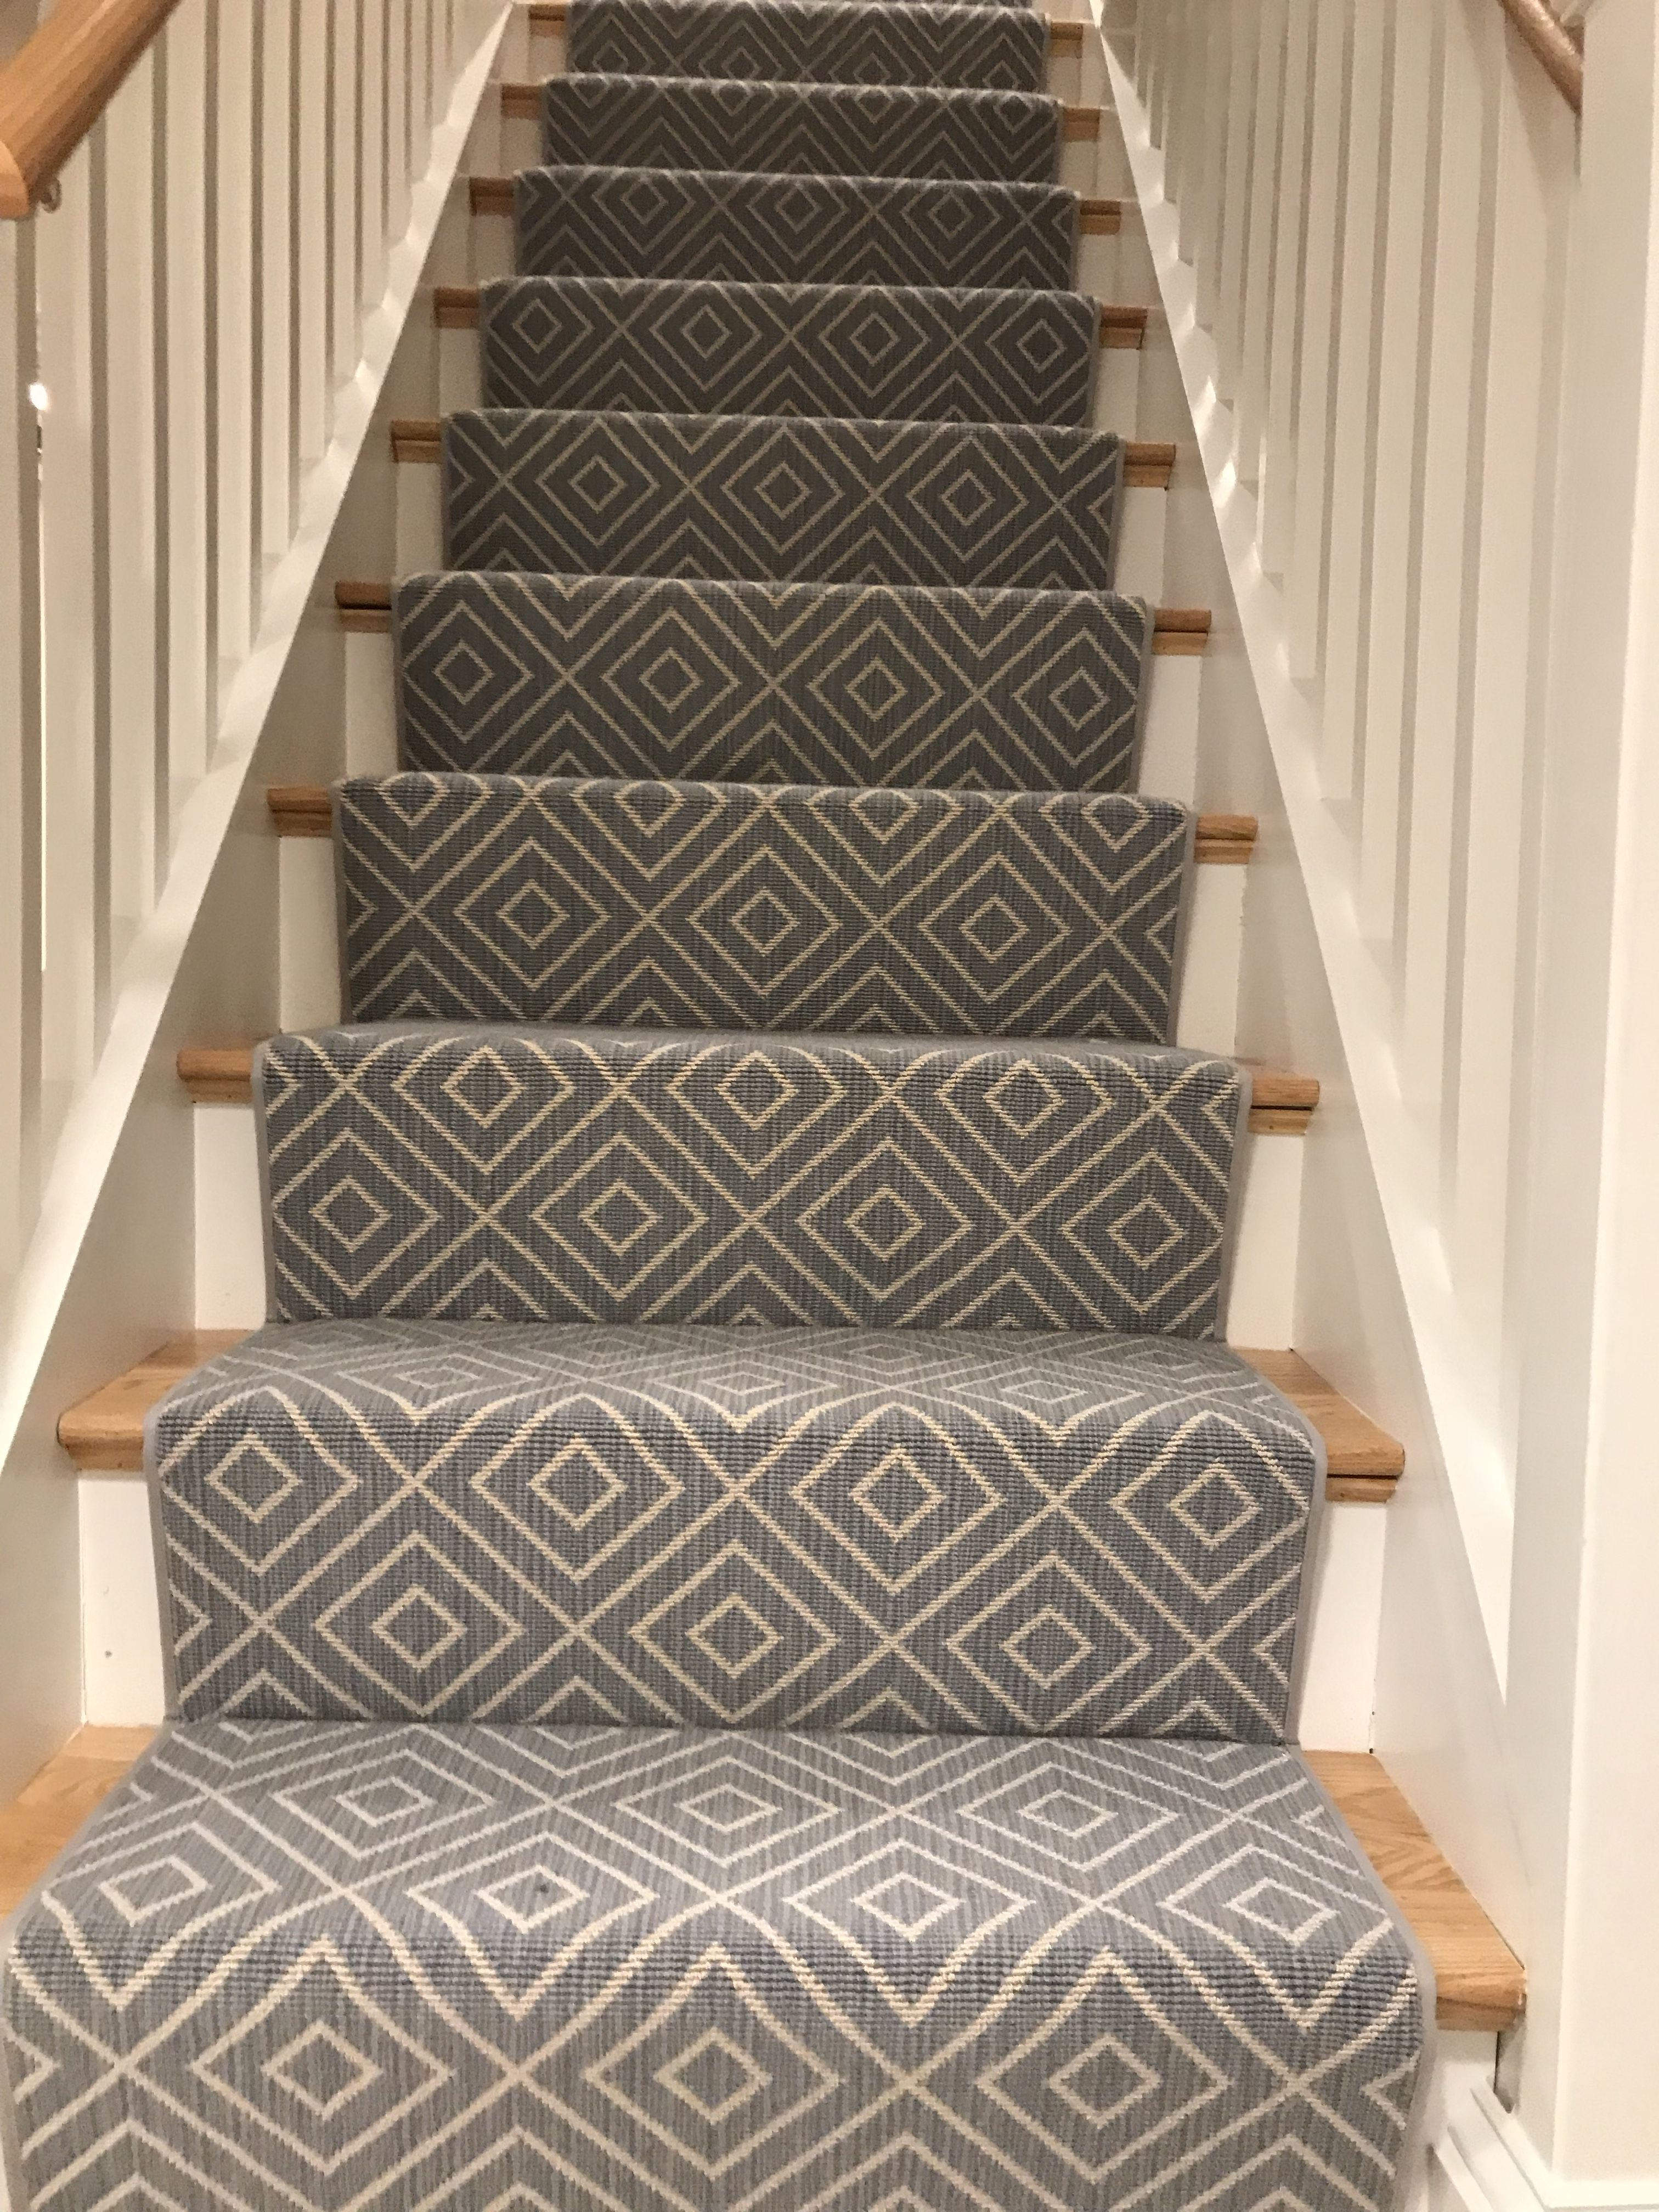 Stairs Rug Runners Pin By The Carpet Workroom On Geometric Stair Runners Rugs In 2019